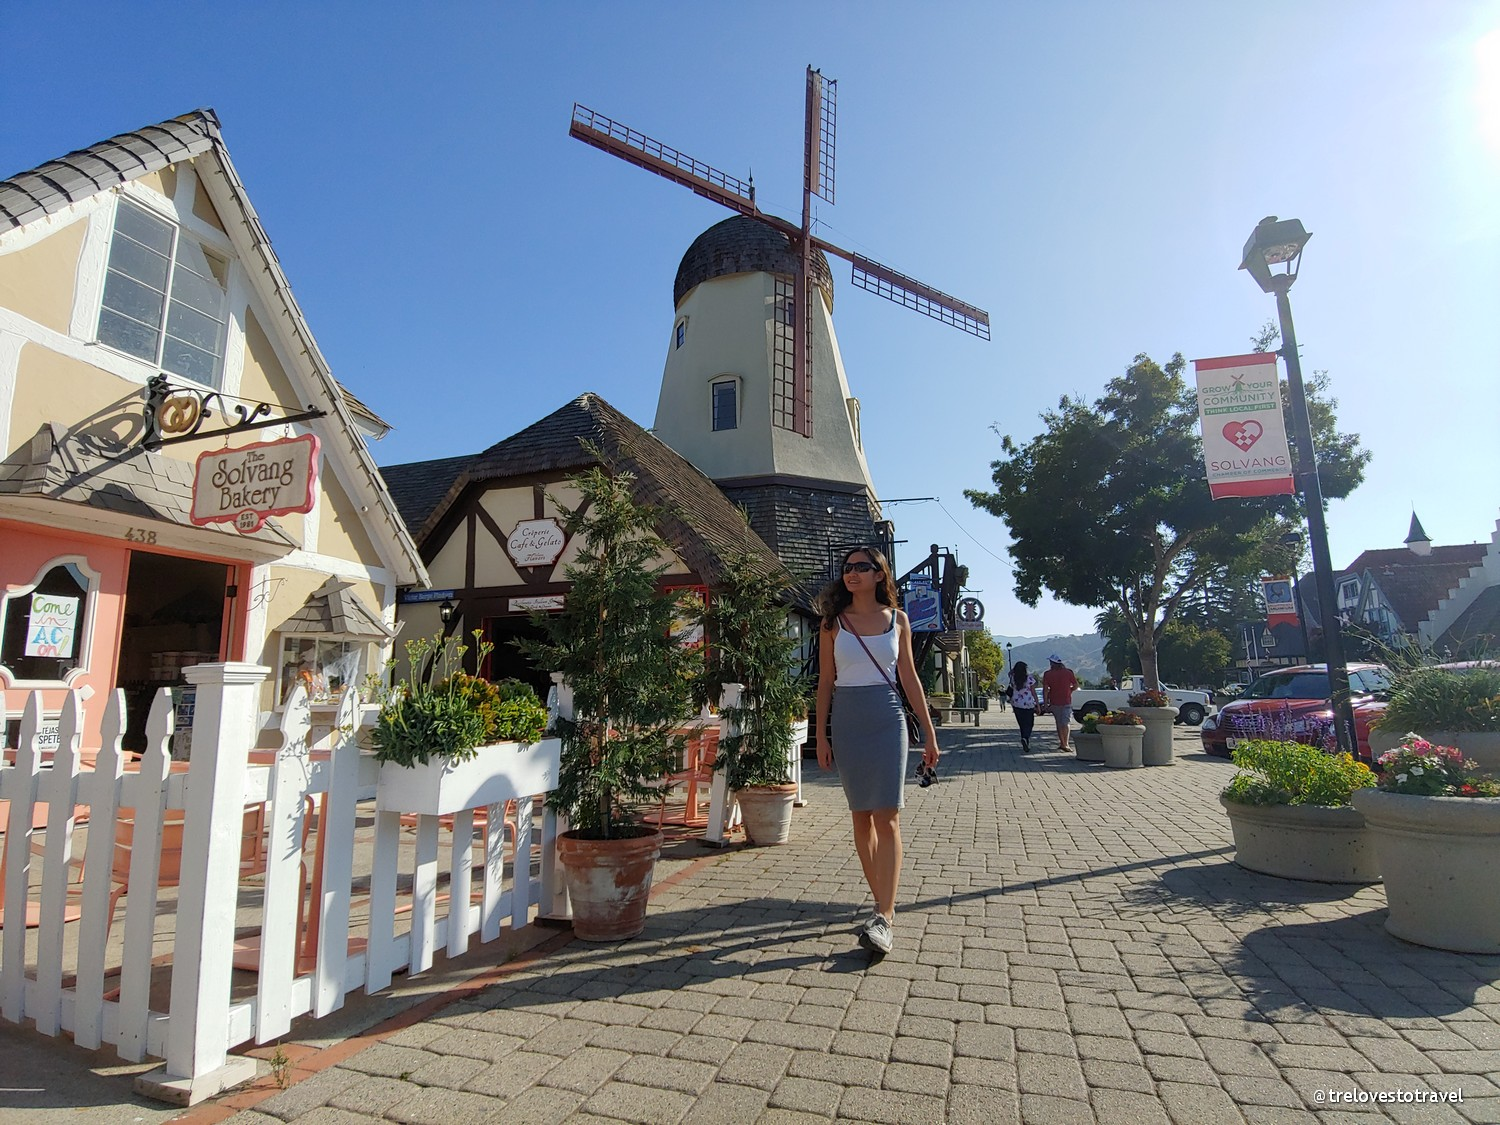 Must-try foods in Solvang